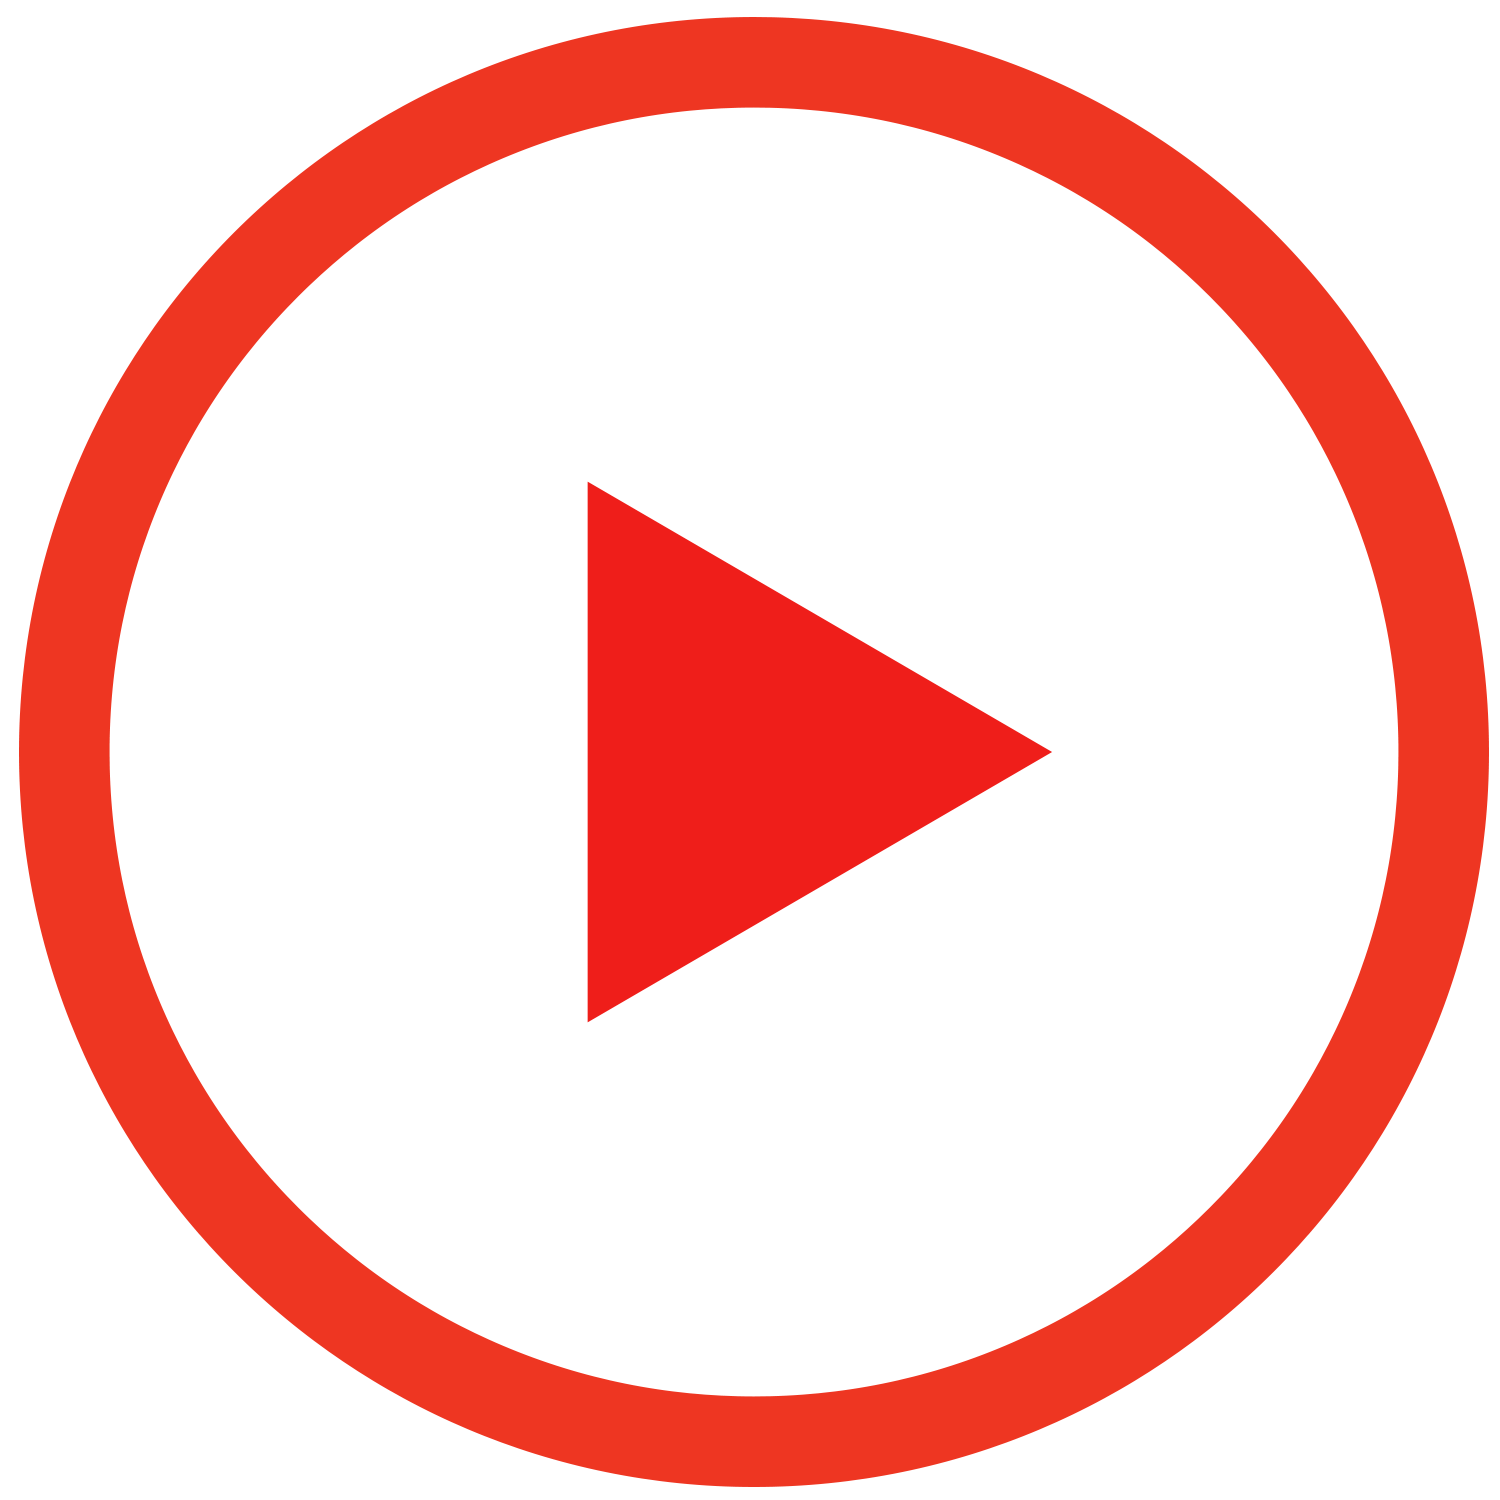 Play Button PNG - 173988